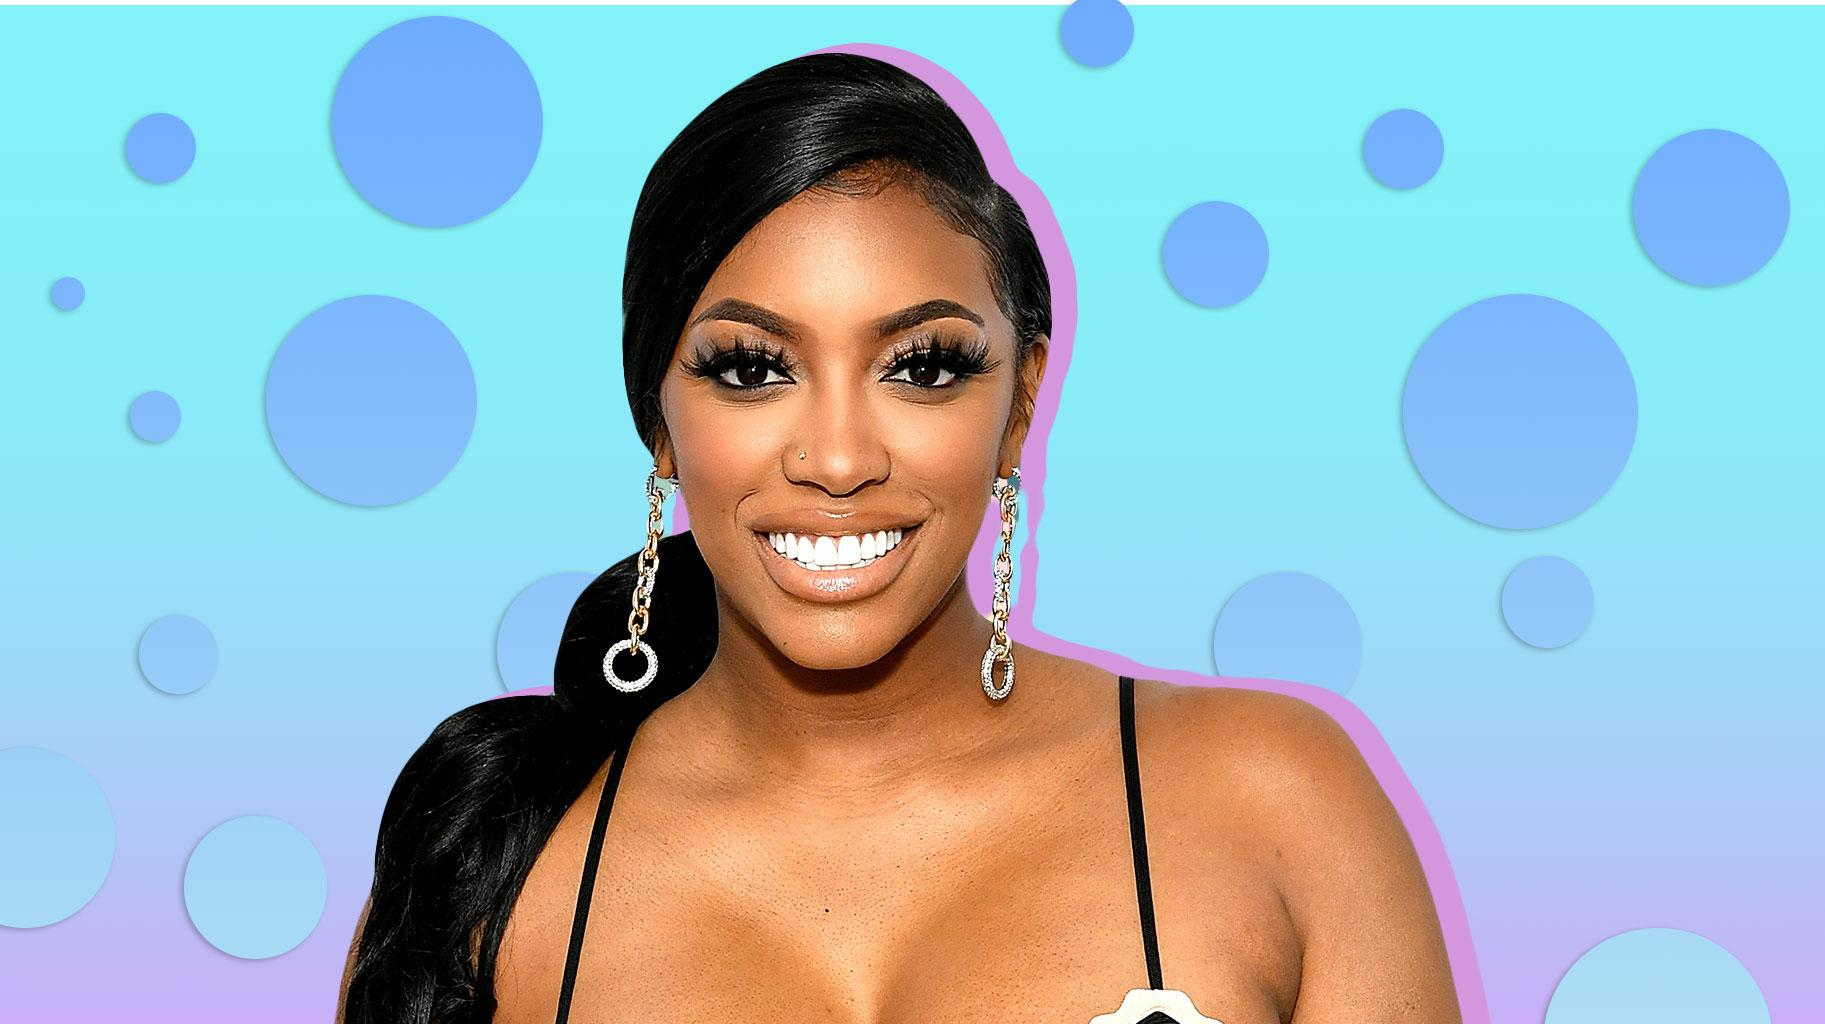 Porsha Williams Tries A No Cat Eye For A Fresher Look - Fans Notice She Lost More Weight